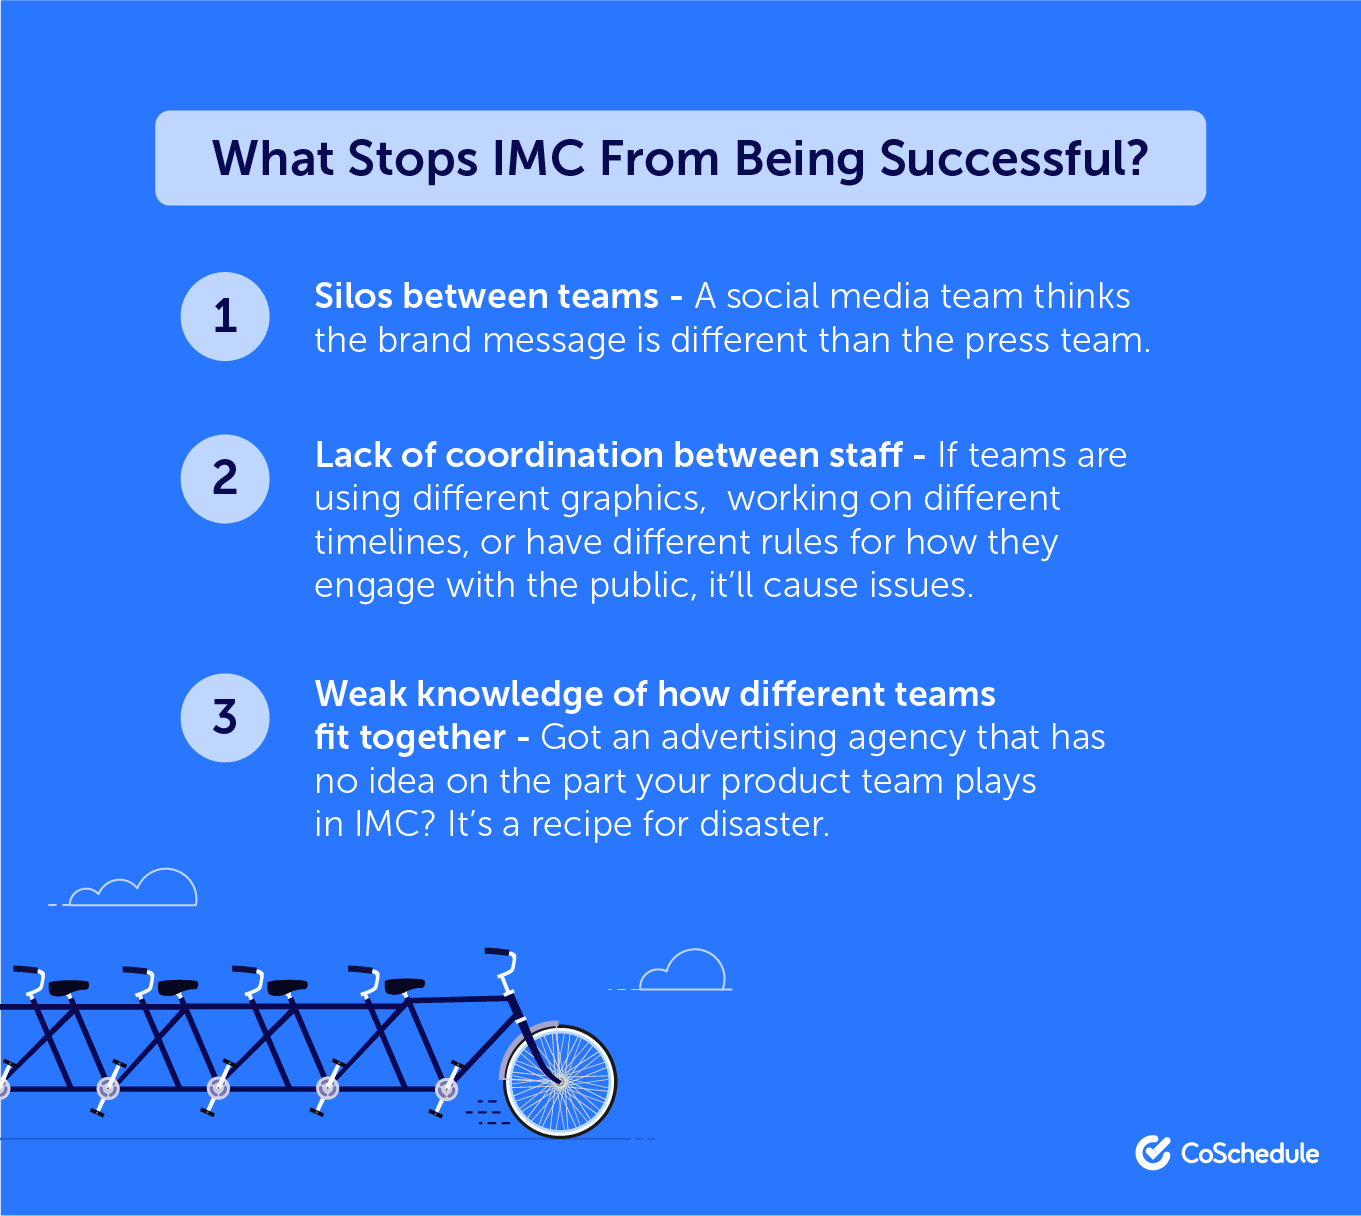 What stops the success of an integrated marketing campaign?